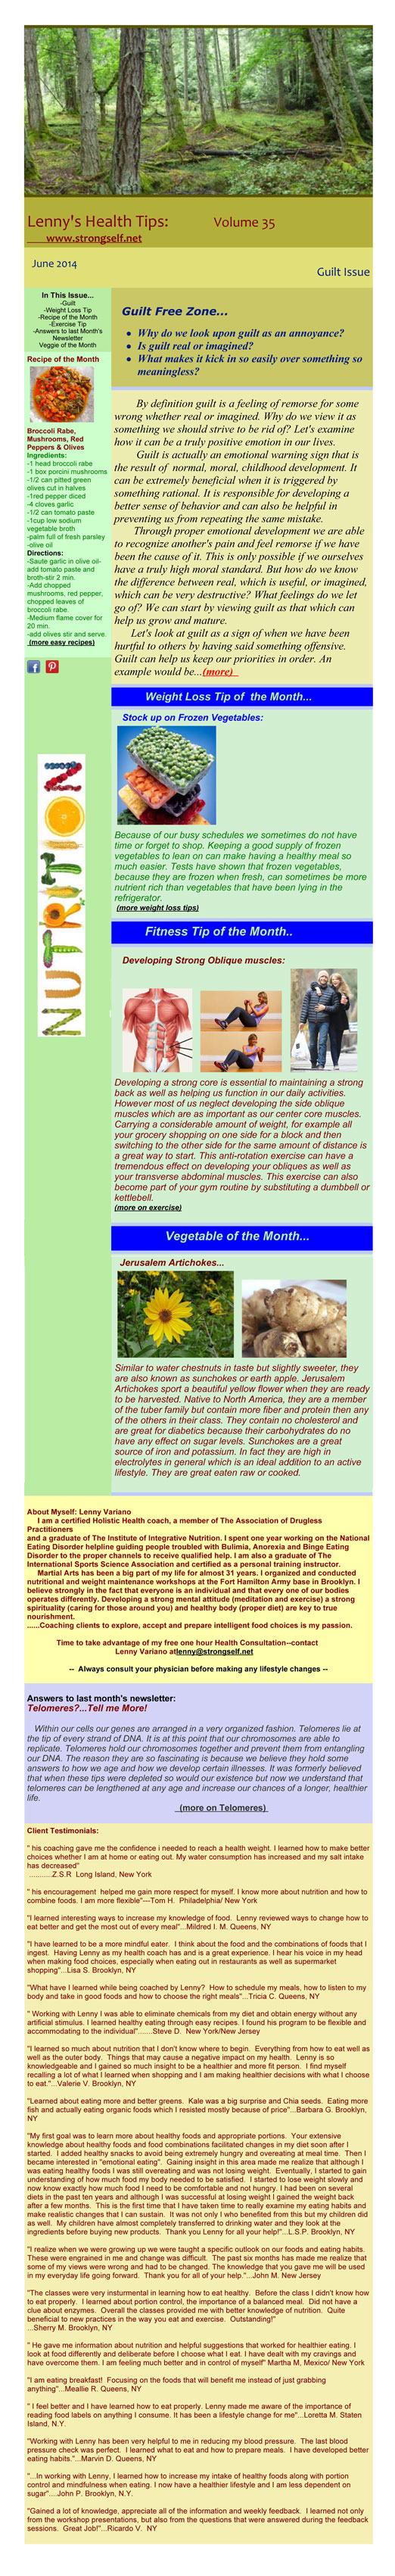 June 2014 Healthy Tips Newsletter from certified Holistic Health Counselor Lenny Variano